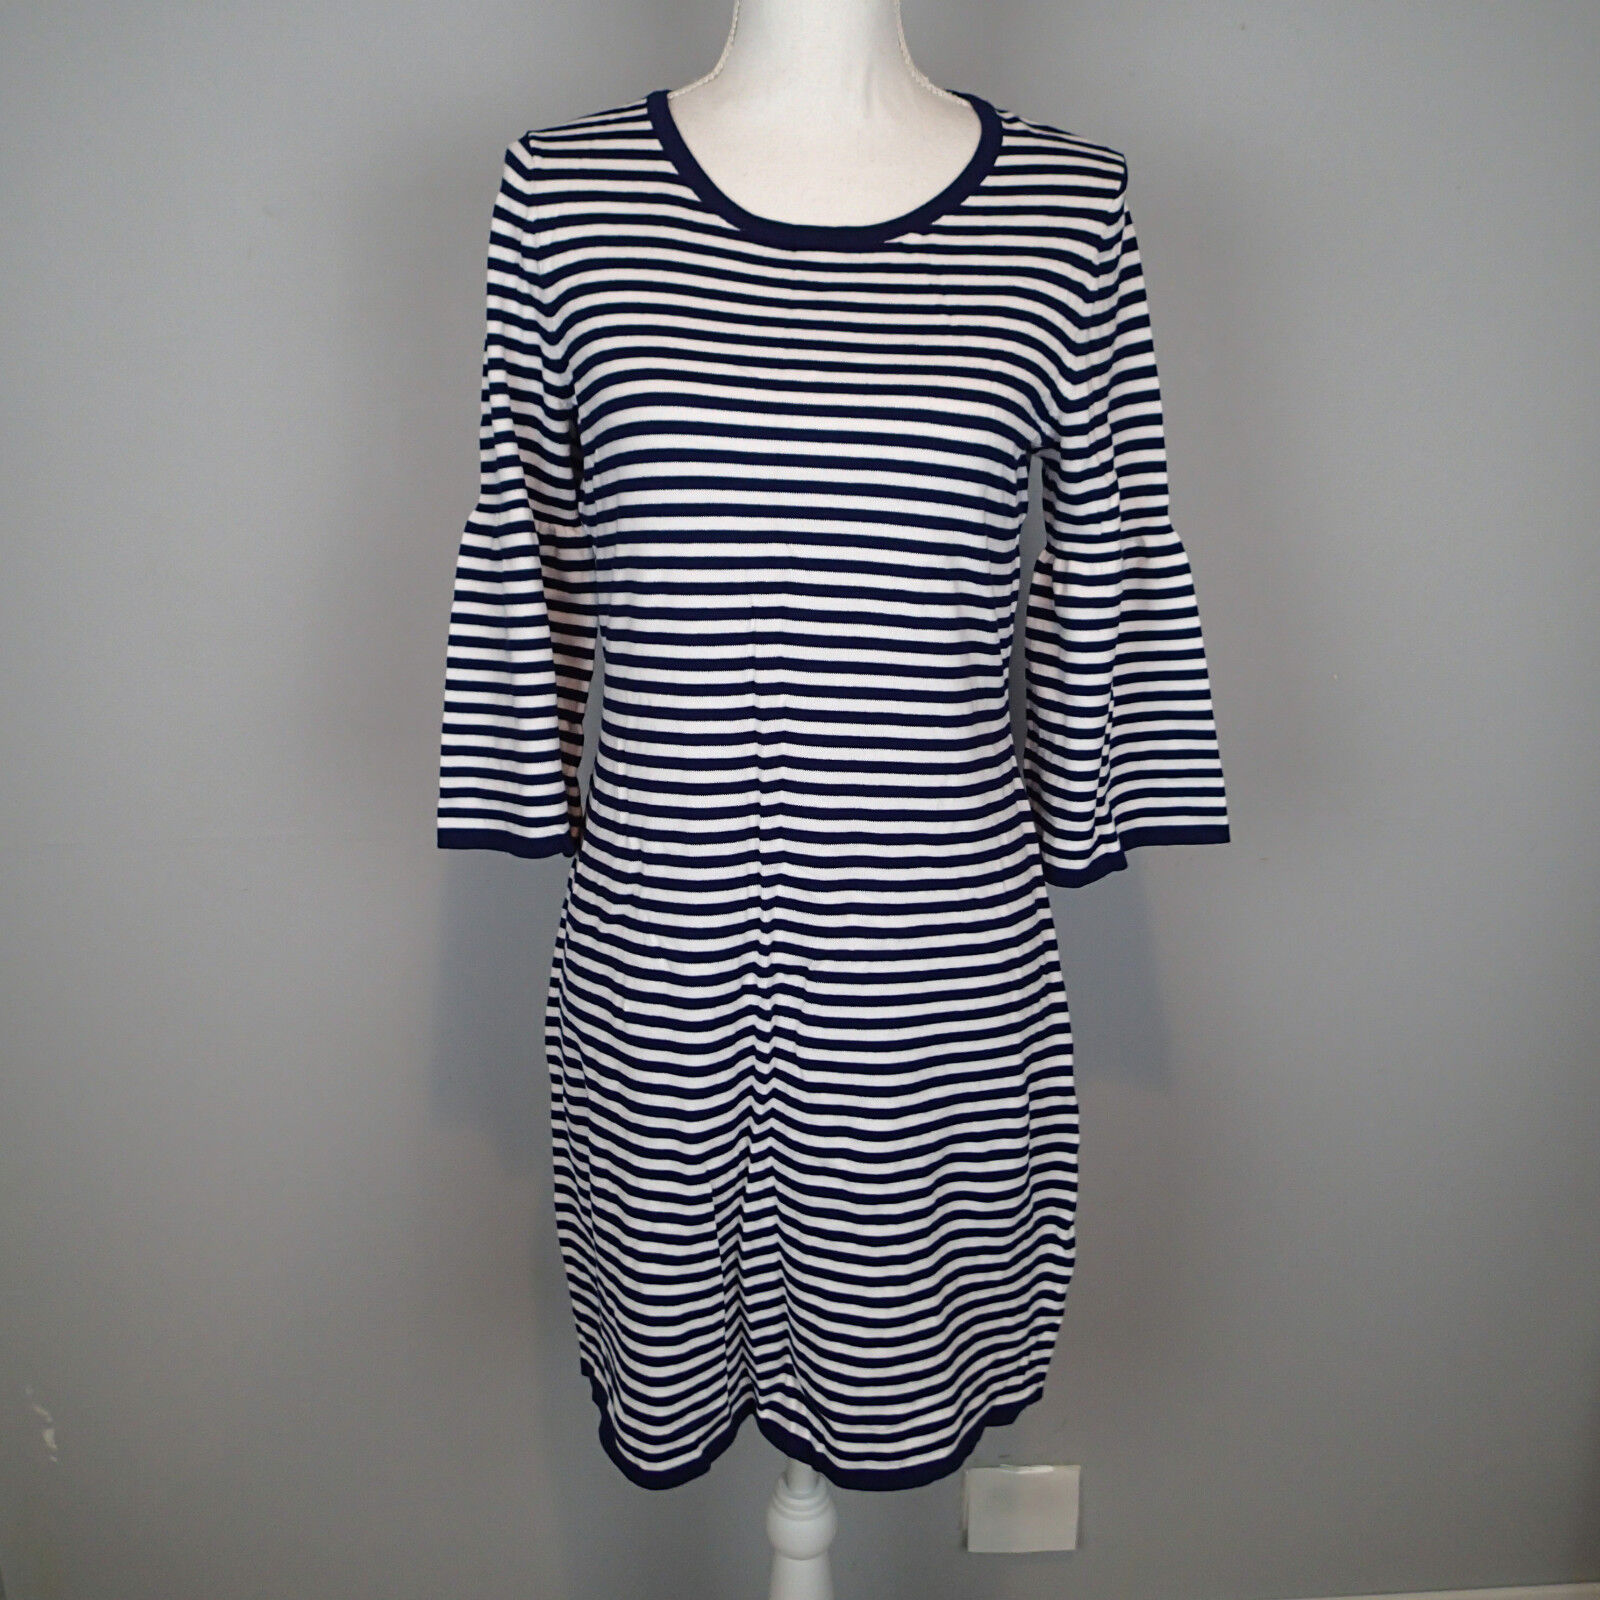 NWT Sail to Sable STS Navy & Weiß Striped Bell Sleeves Sheath Dress M    h7